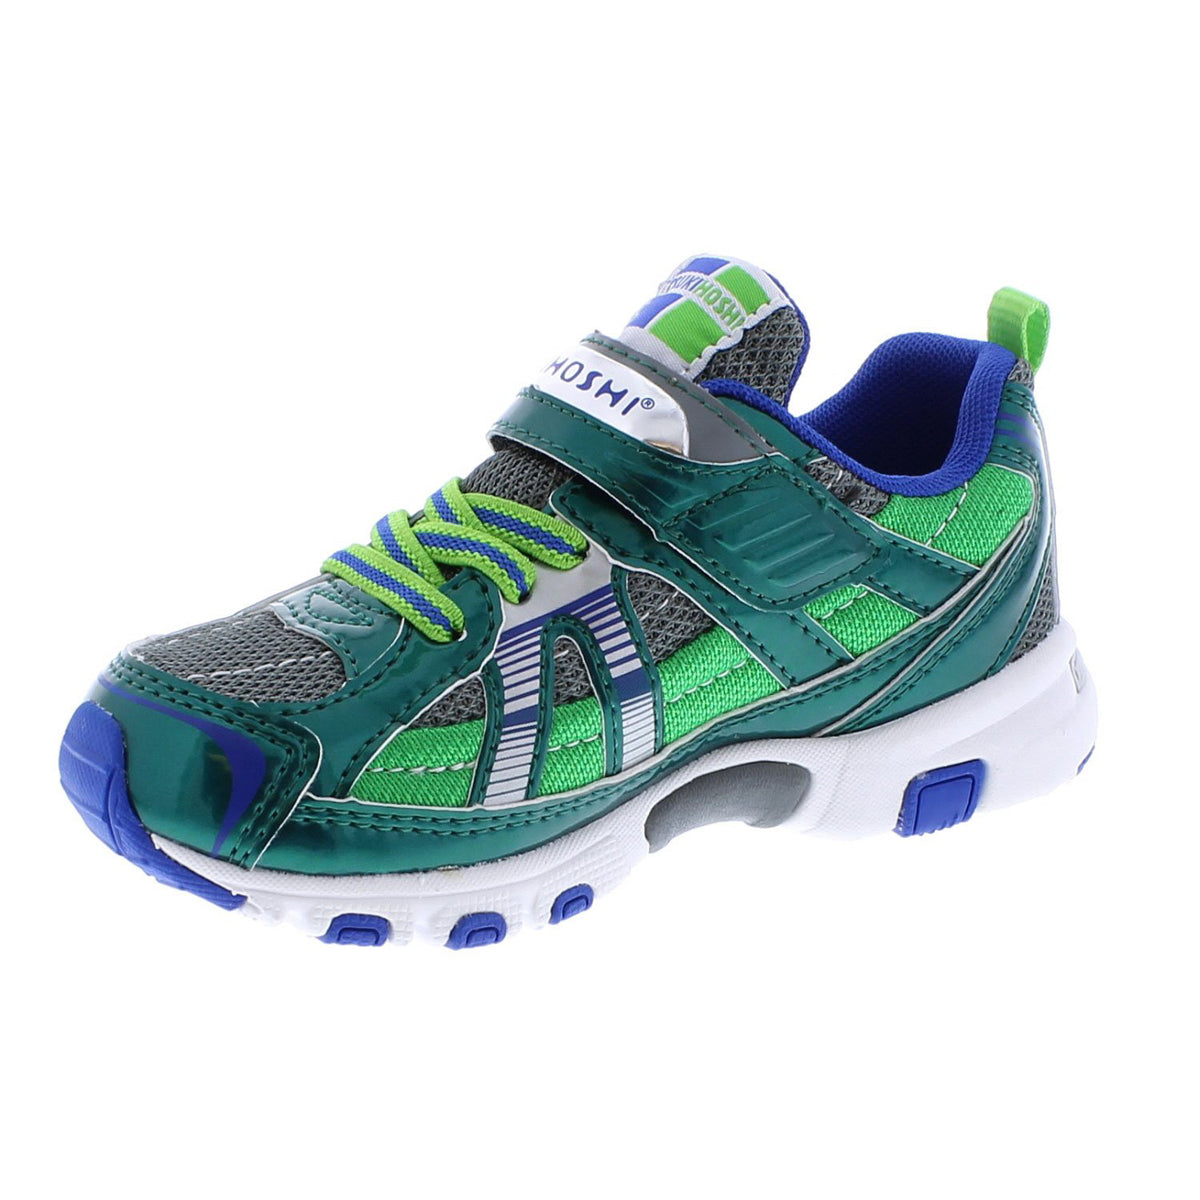 Childrens Tsukihoshi Storm Sneaker in Green/Gray from the front view